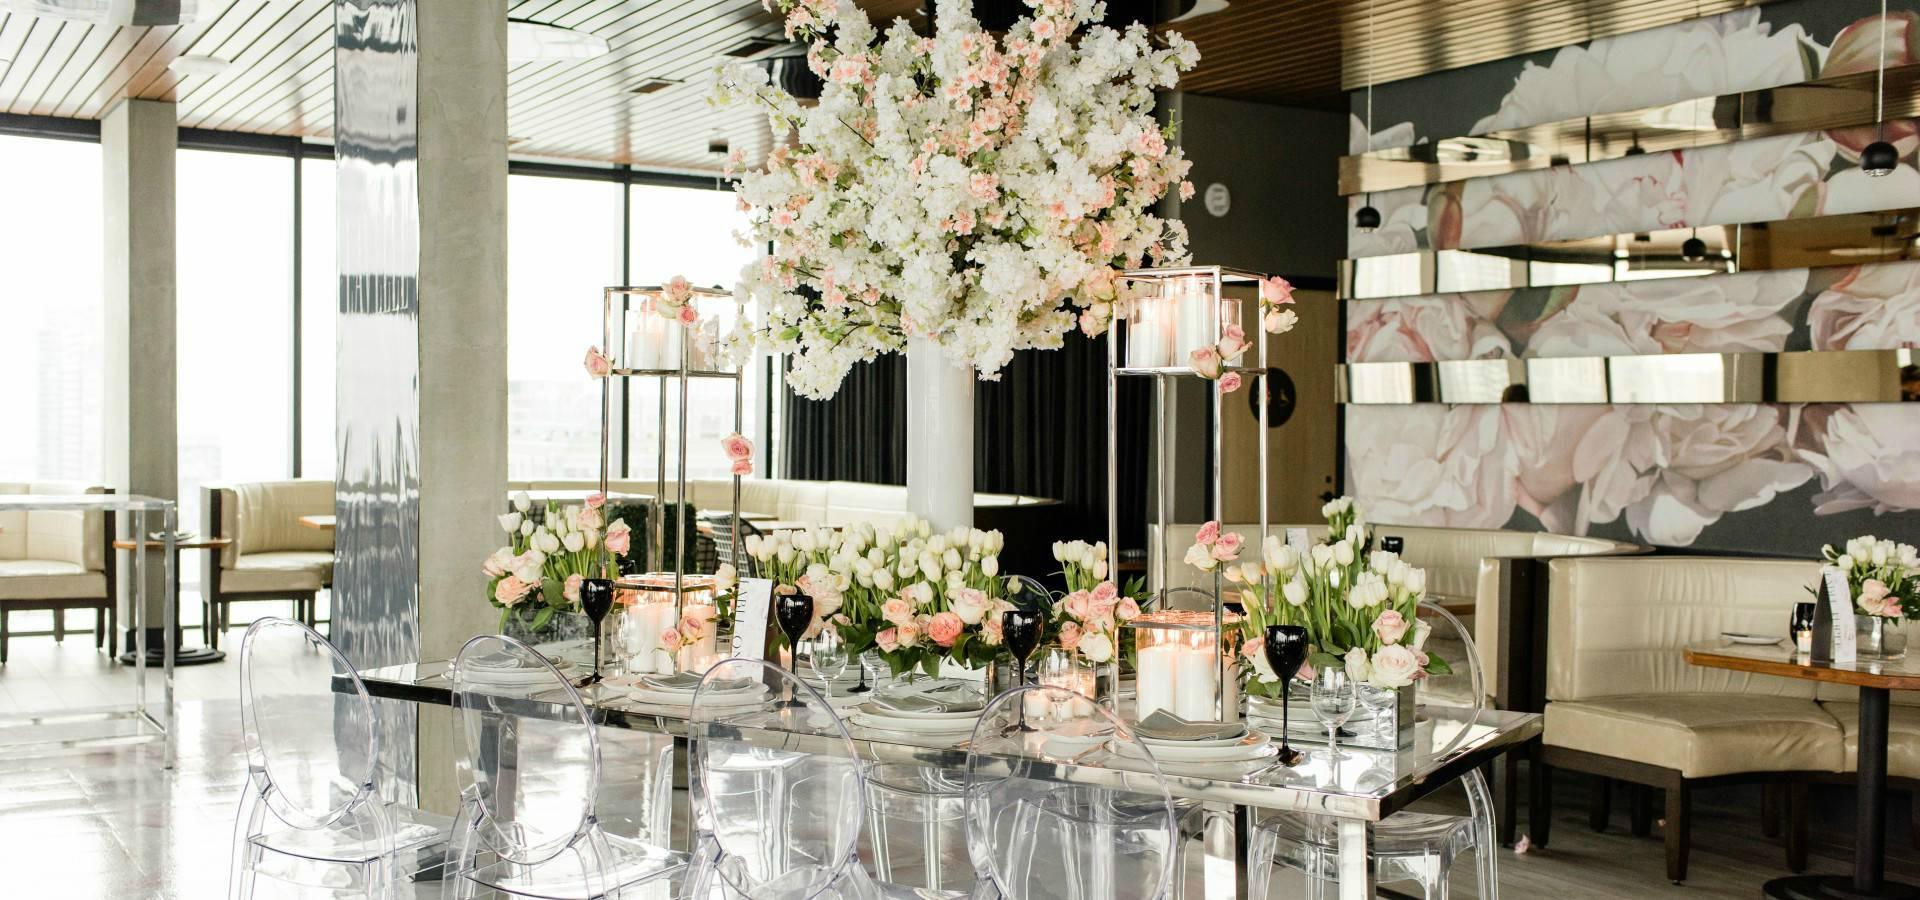 Hero image for An Exclusive Bridal Open House at The Luxurious Lavelle Rooftop